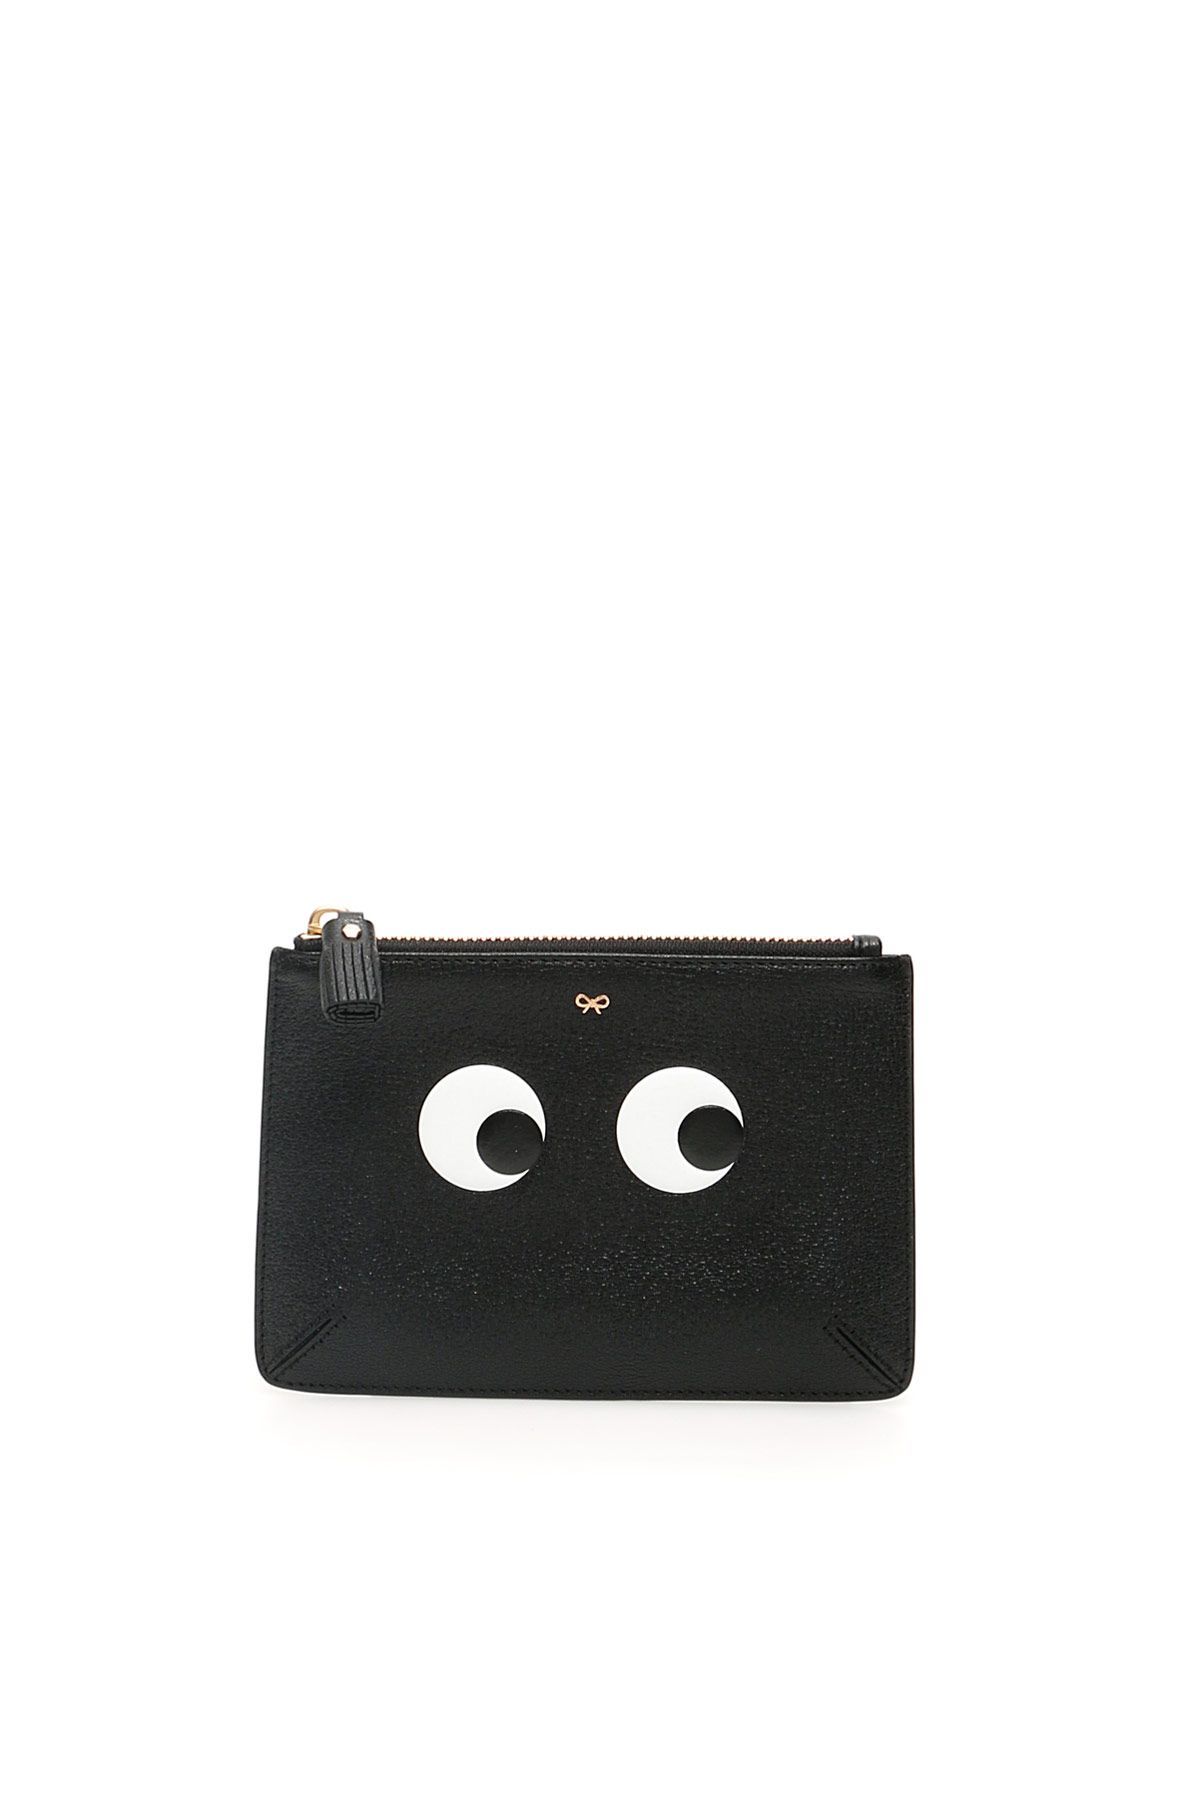 Anya Hindmarch EYES POUCH